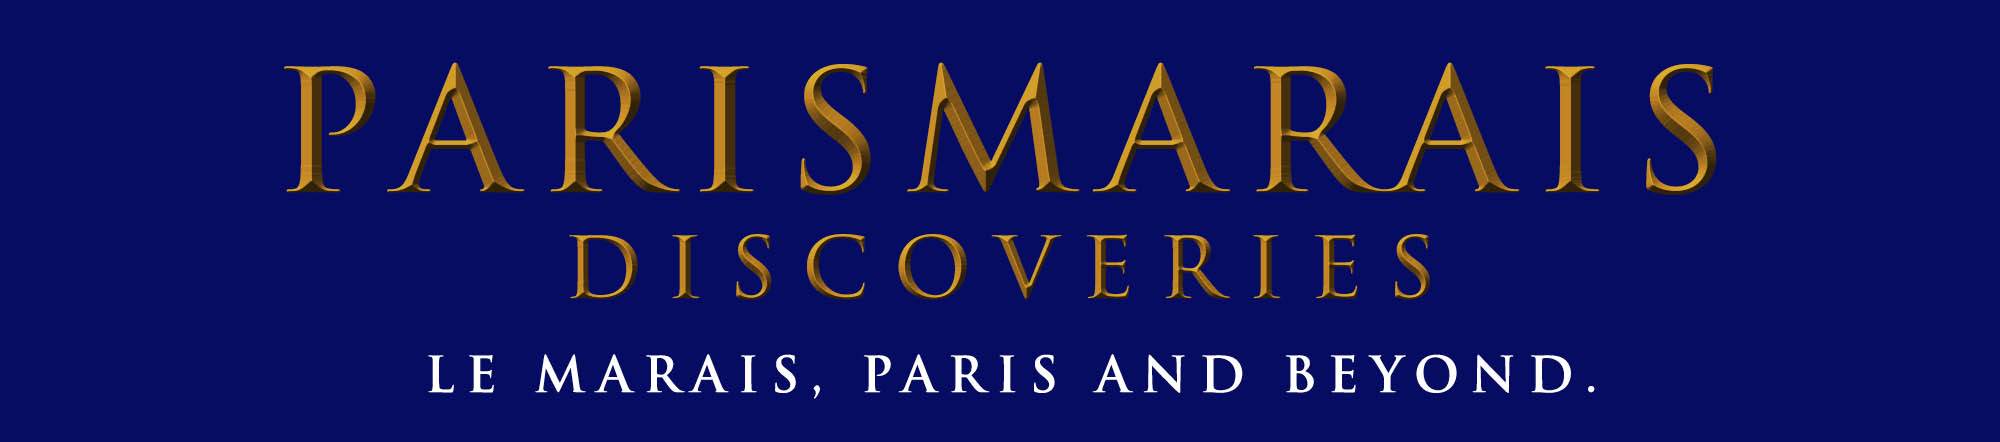 PARISMARAIS DISCOVERIES - LE MARAIS PARIS AND BEYOND